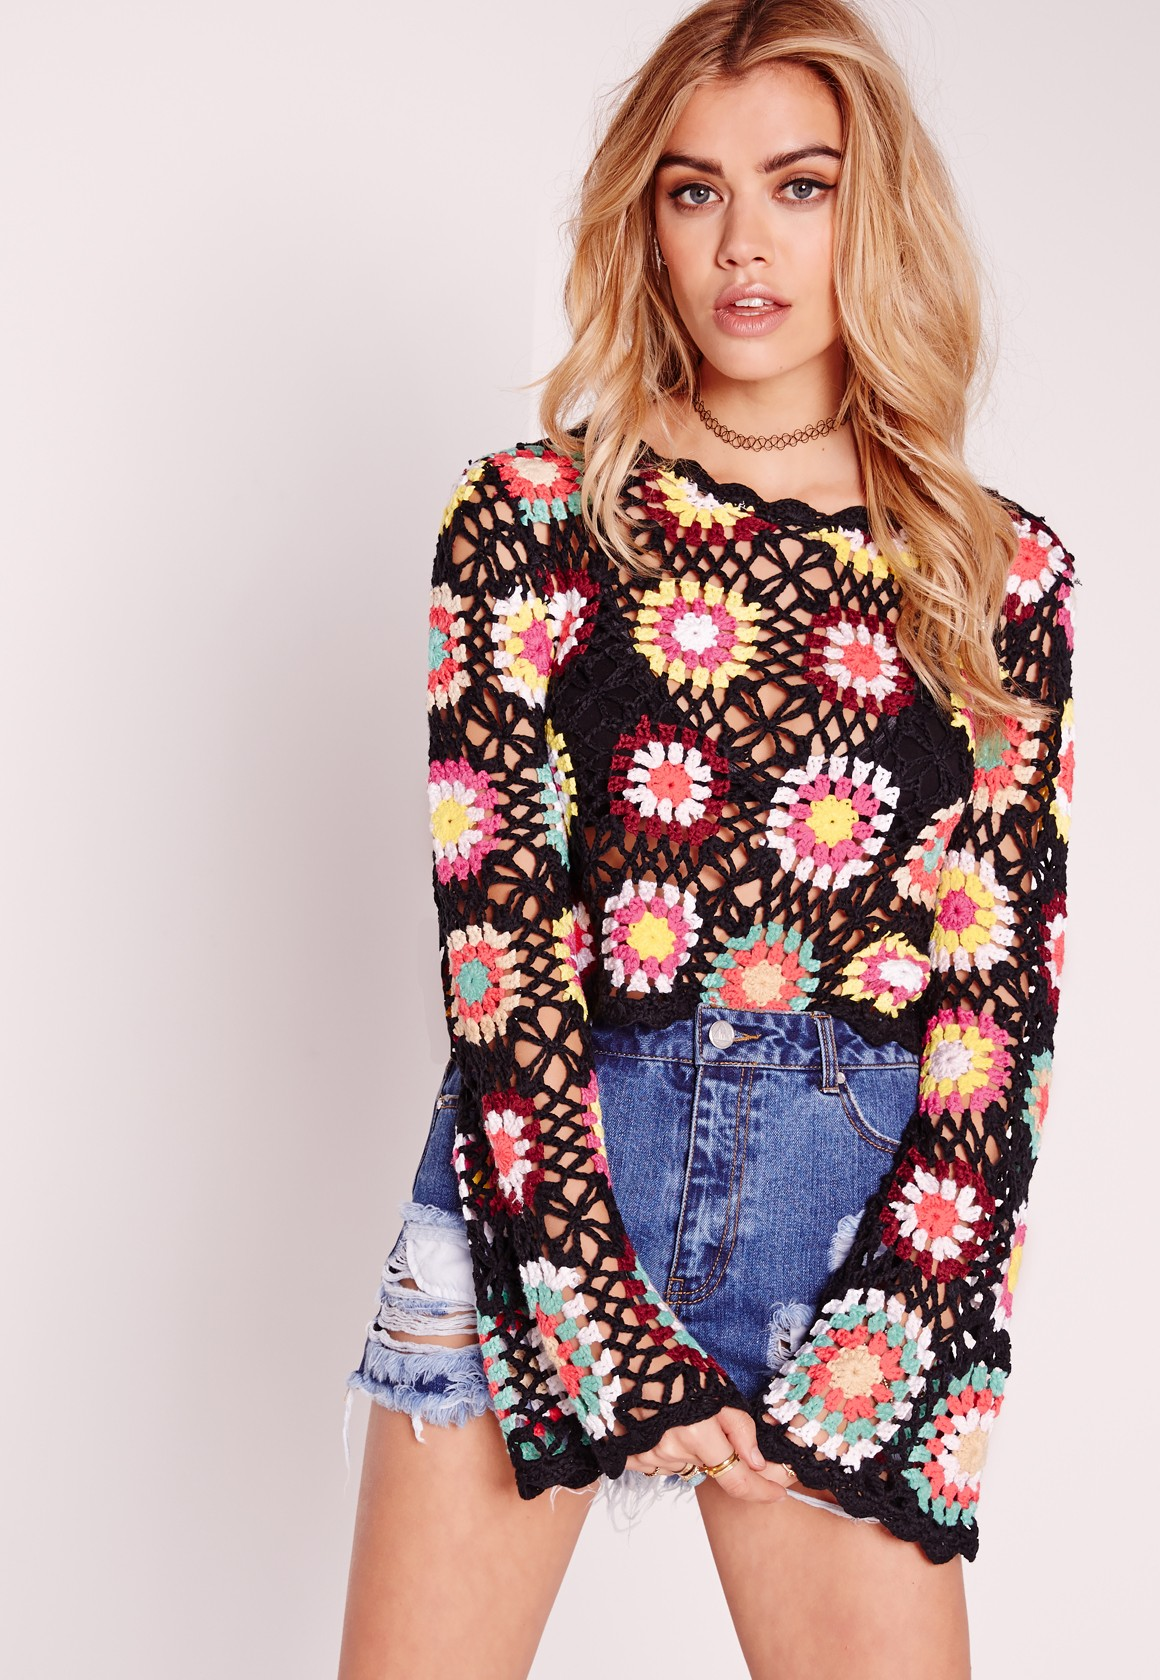 Crotchet top from Missguided